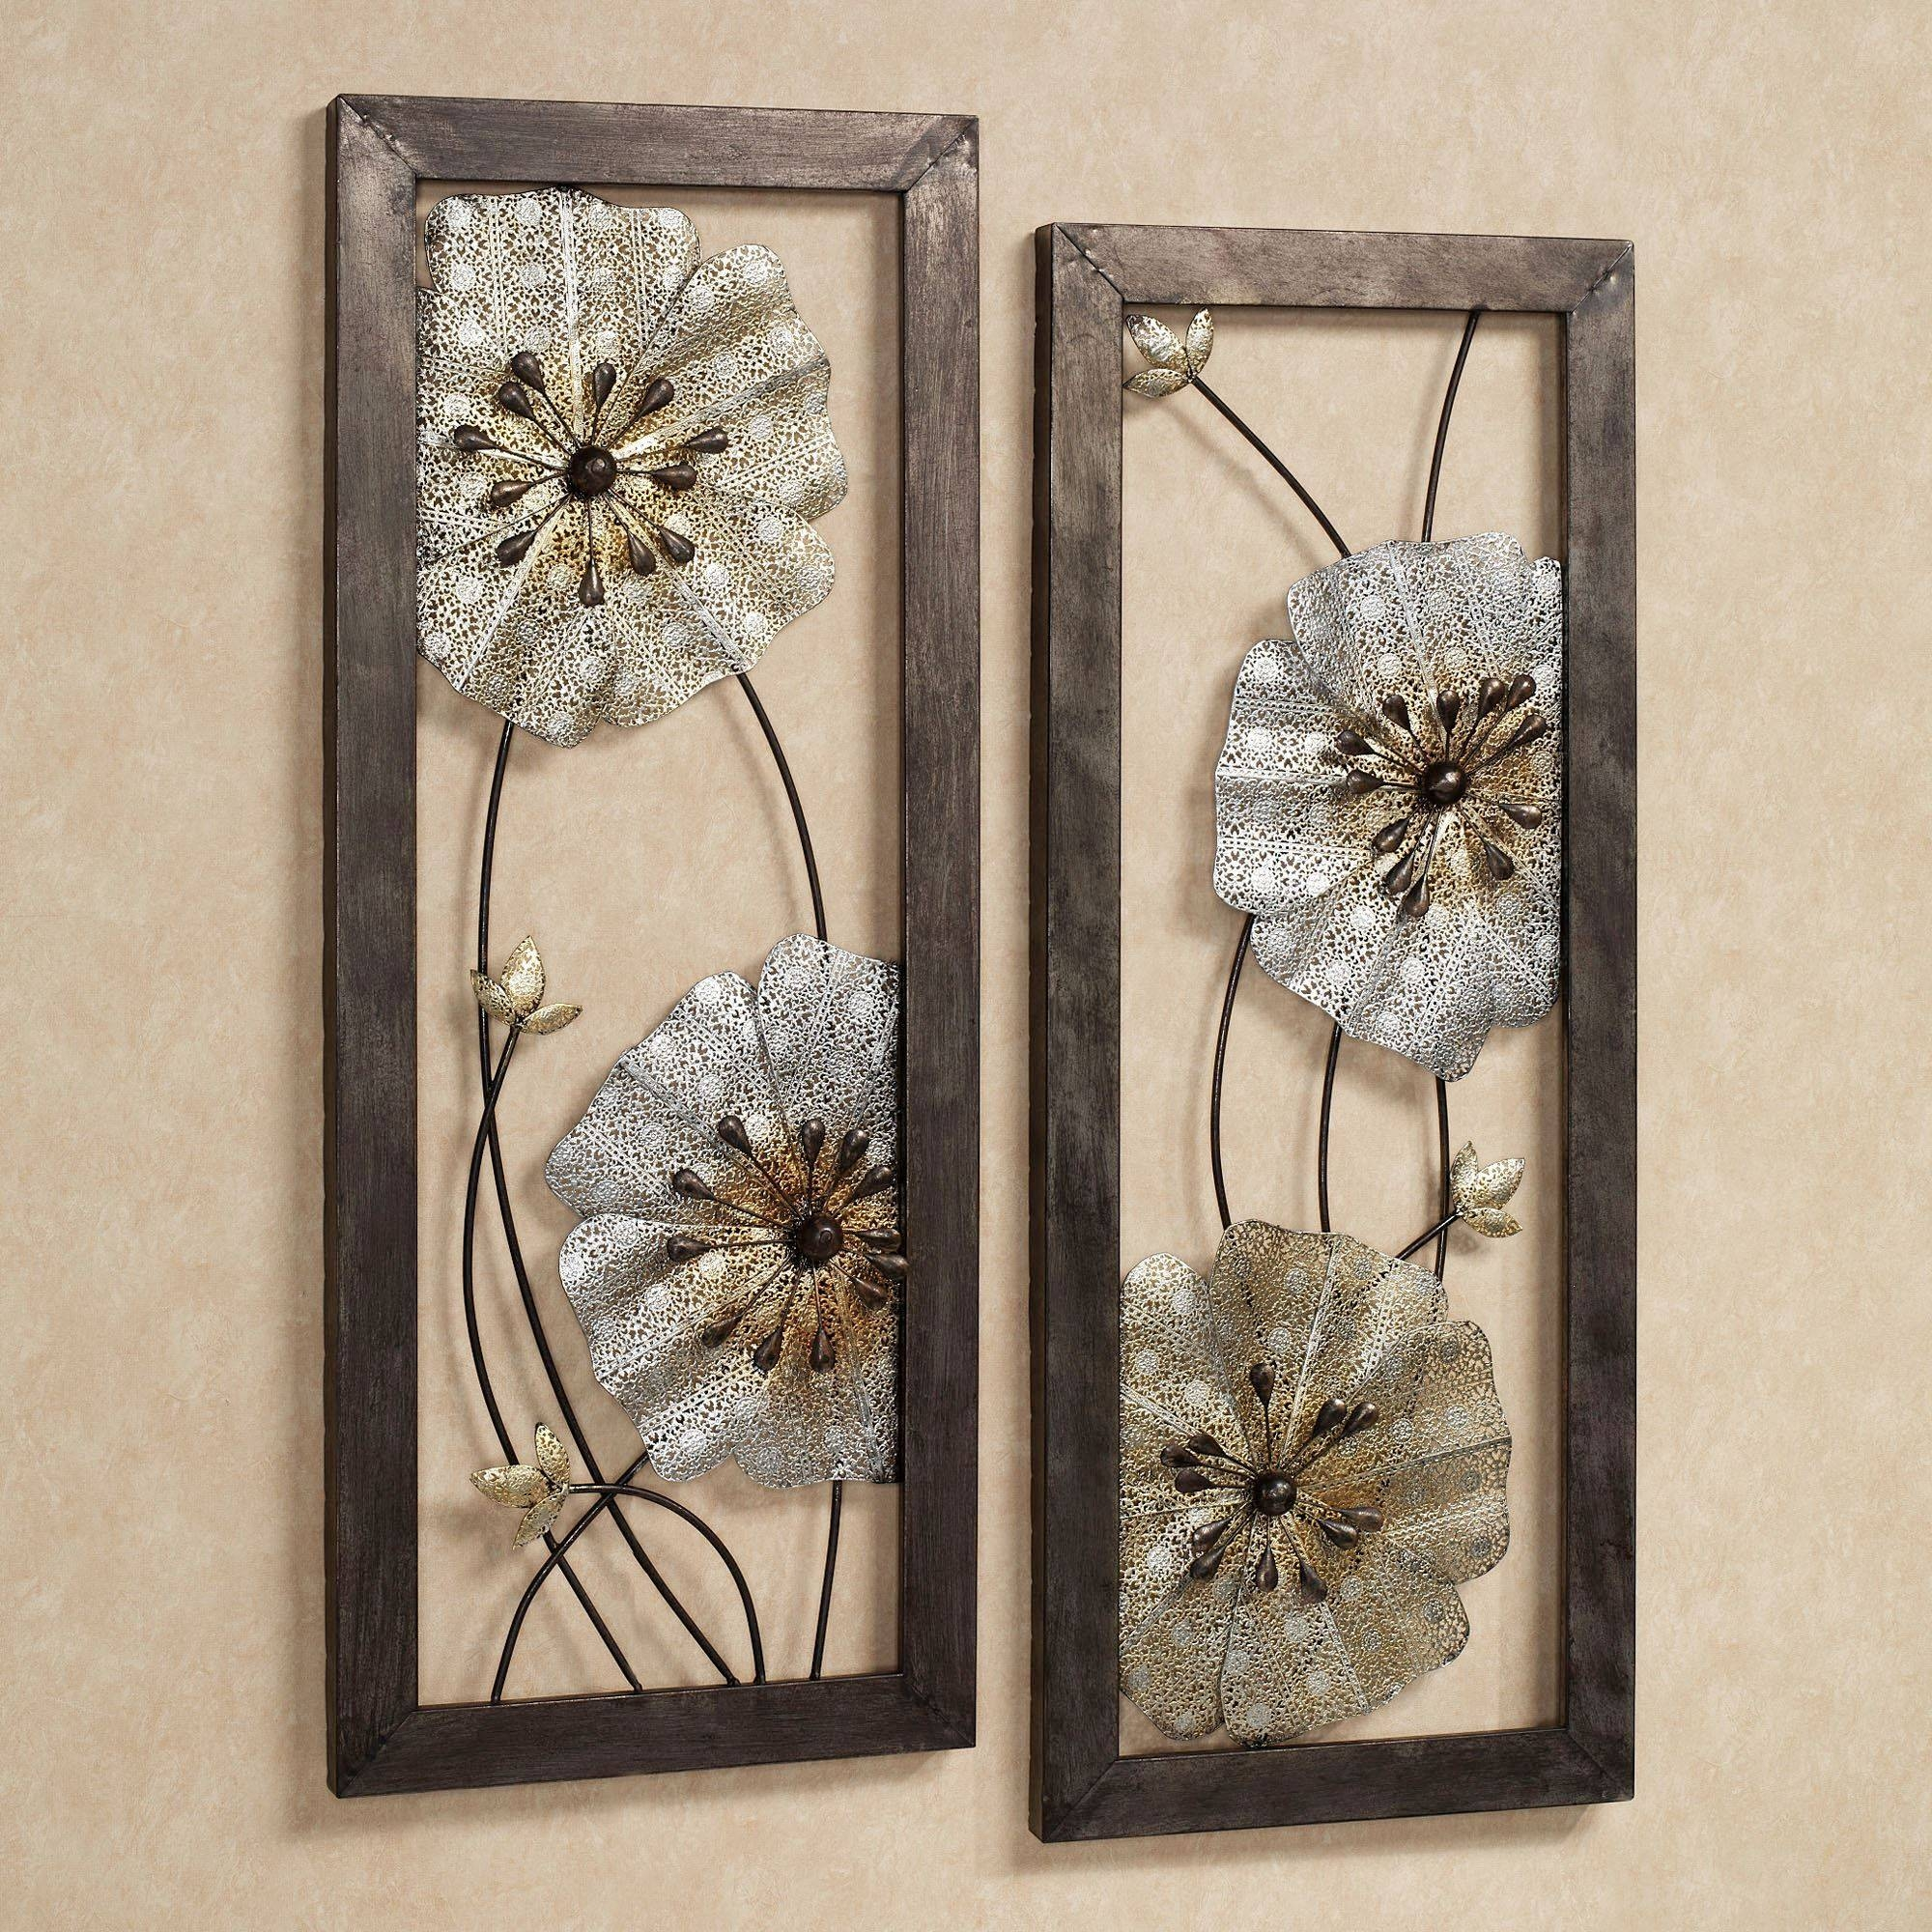 Malacia Openwork Floral Metal Wall Art Set Intended For Newest Metal Wall Art Sets (View 10 of 20)